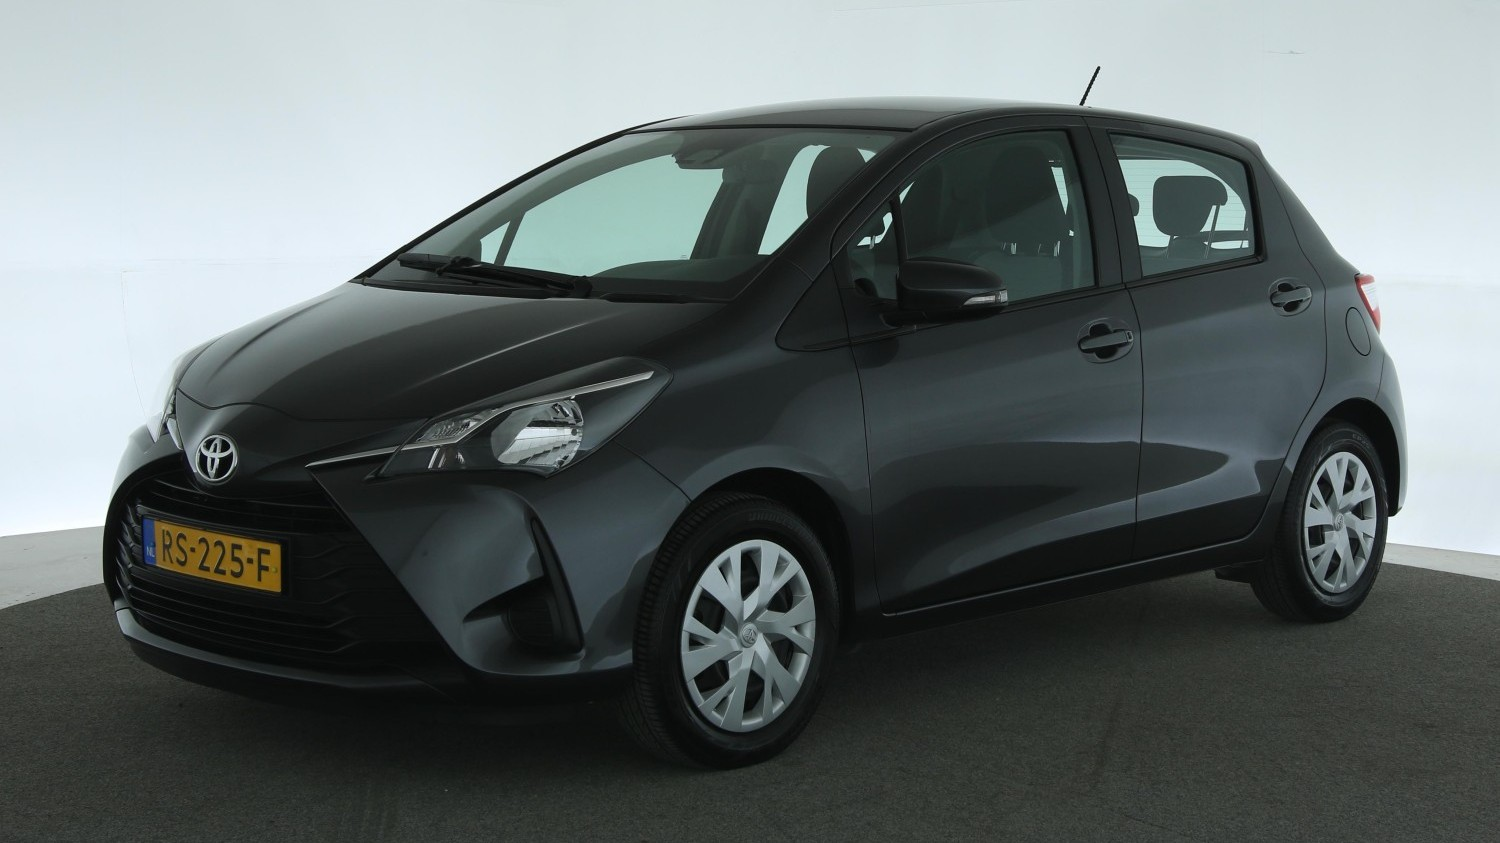 Toyota Yaris Hatchback 2018 RS-225-F 1